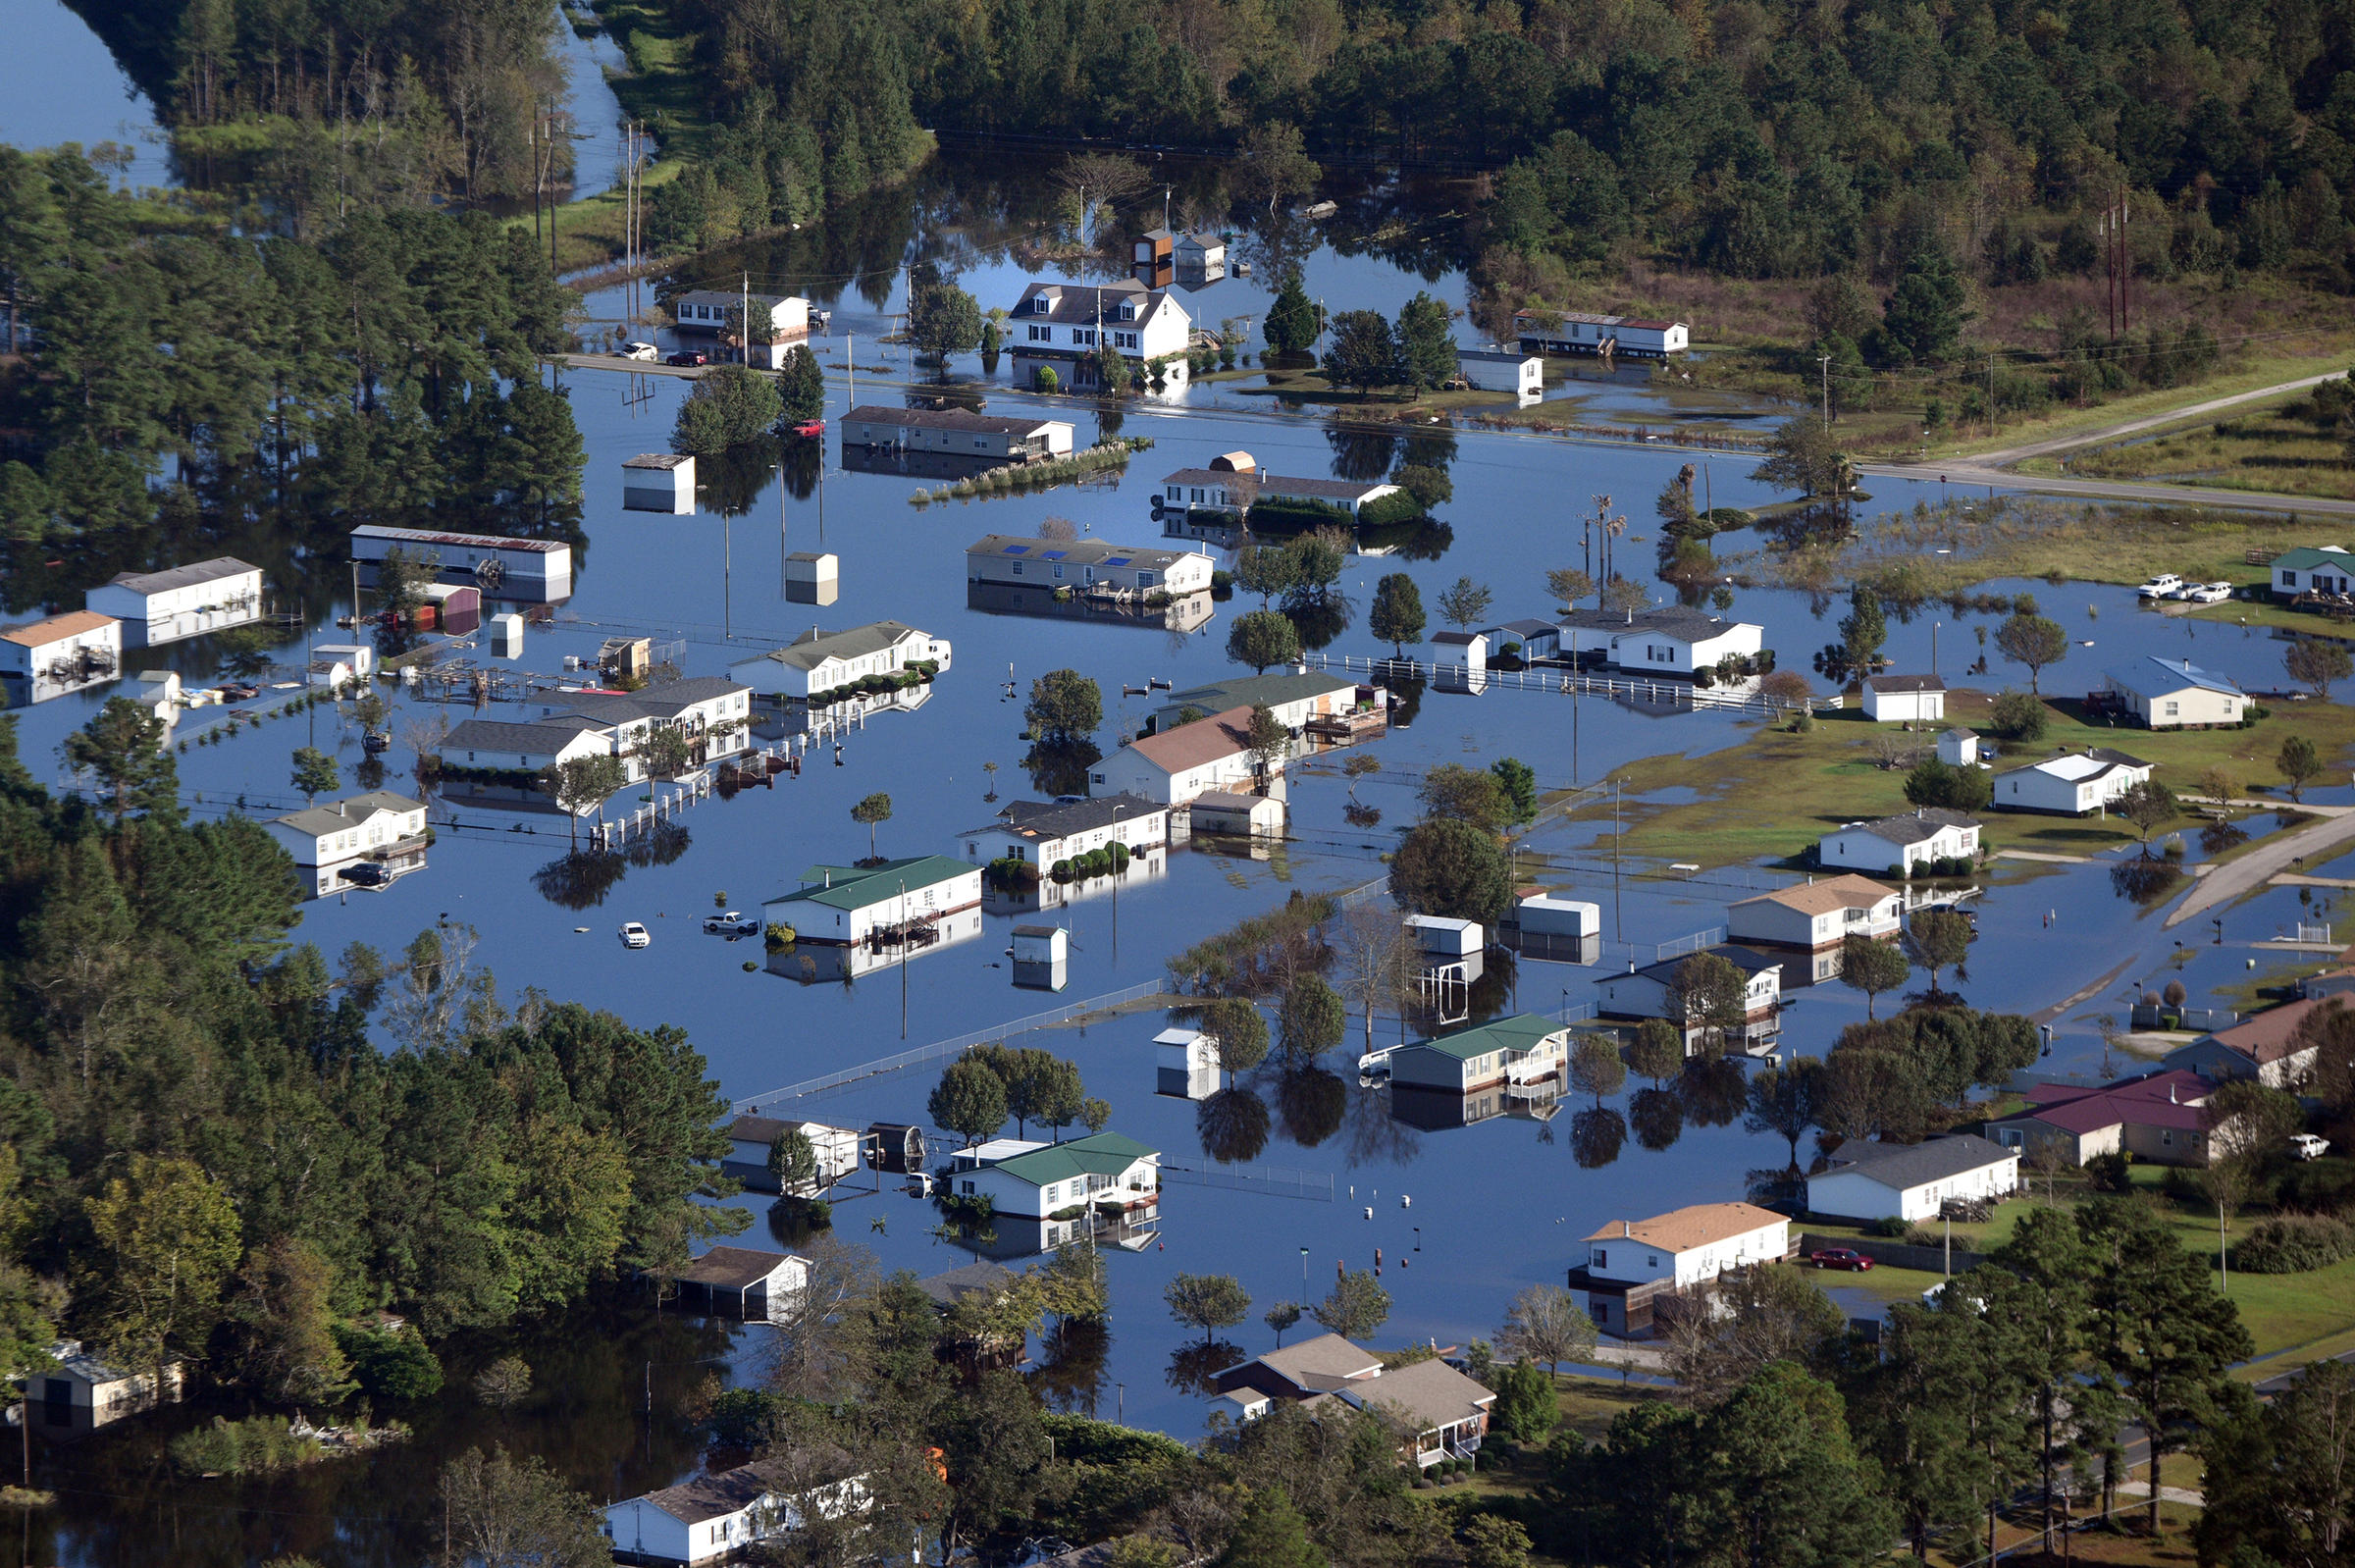 Aerial views of flooding and submerged homes in Lumberton N.C. on Thursday